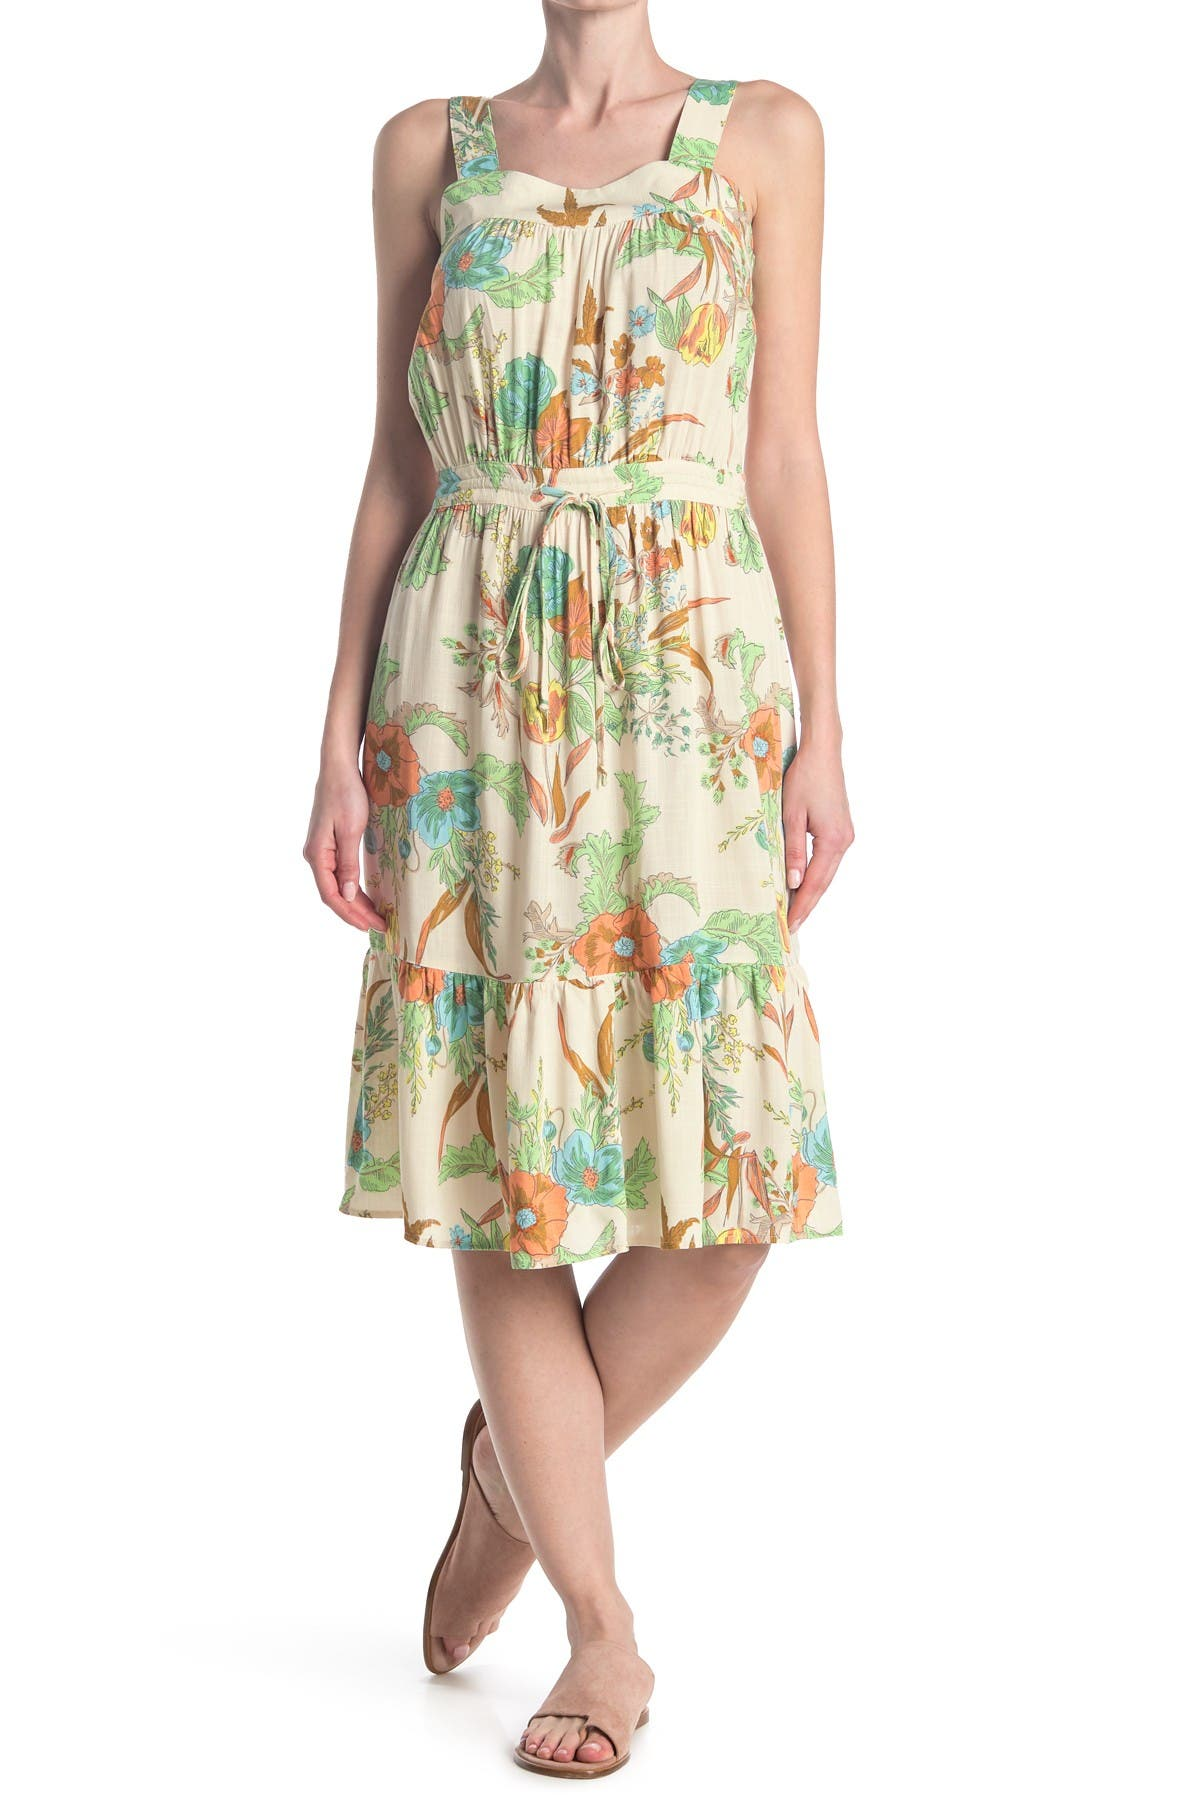 Image of 14TH PLACE Tropical Floral Woven Dress